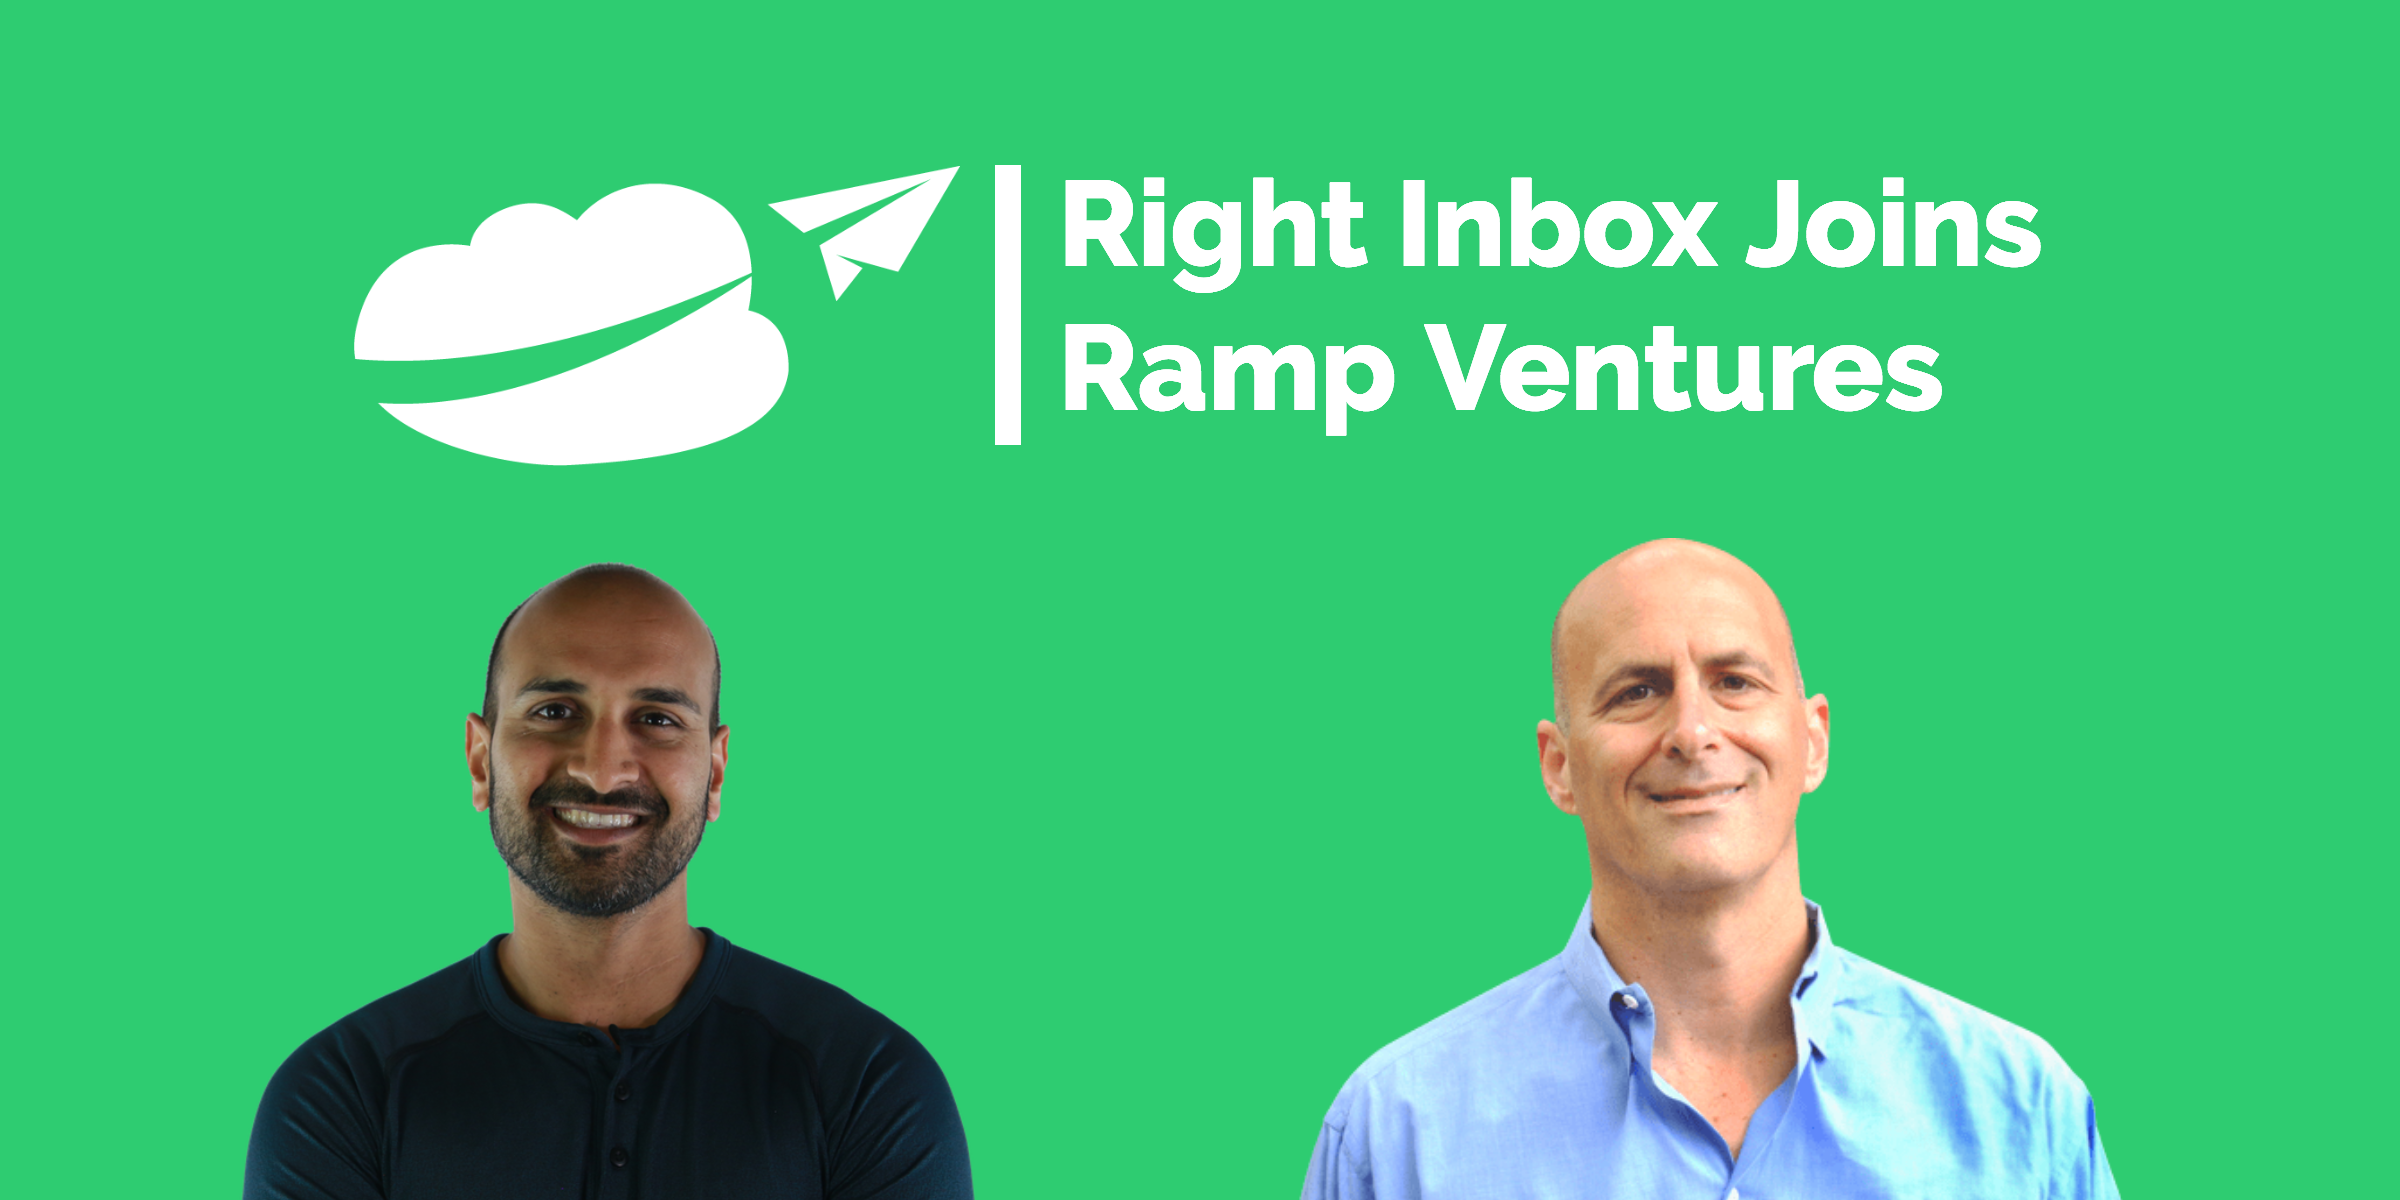 Right Inbox Has A New Team: A Glimpse At What's Ahead